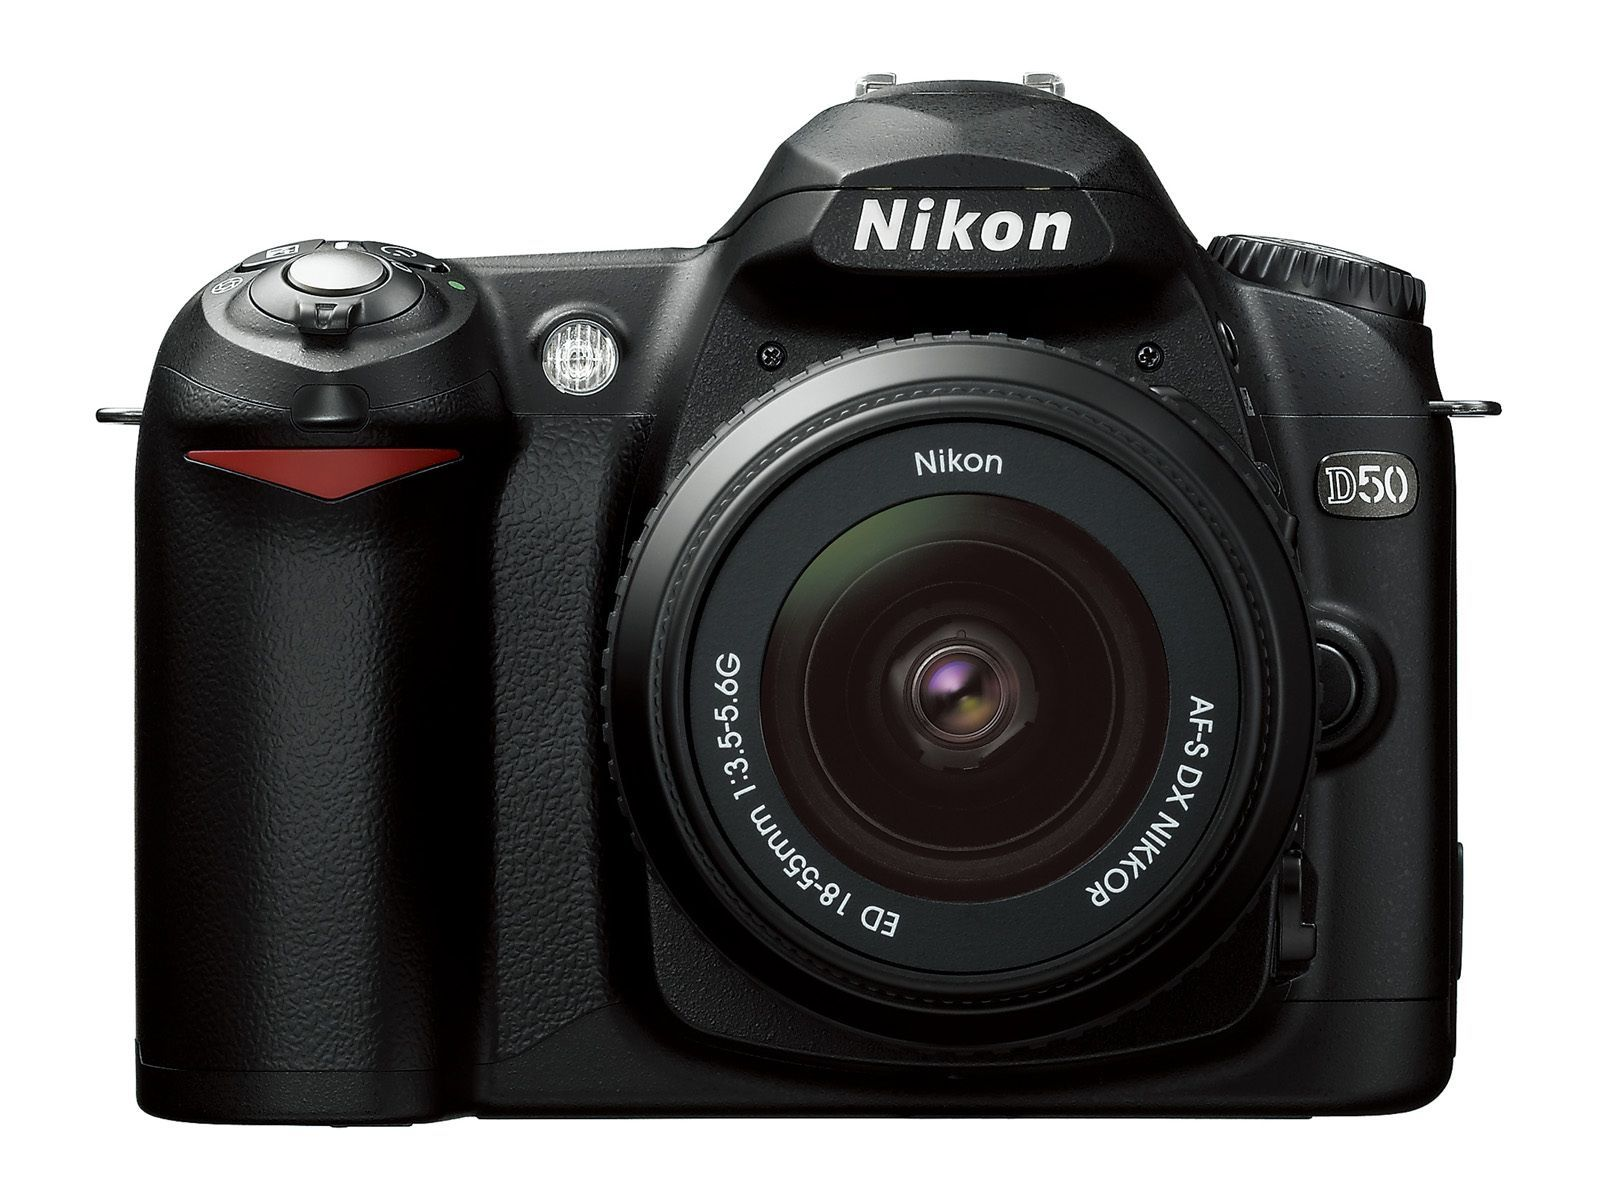 Nikon D50 digital SLR due out in days